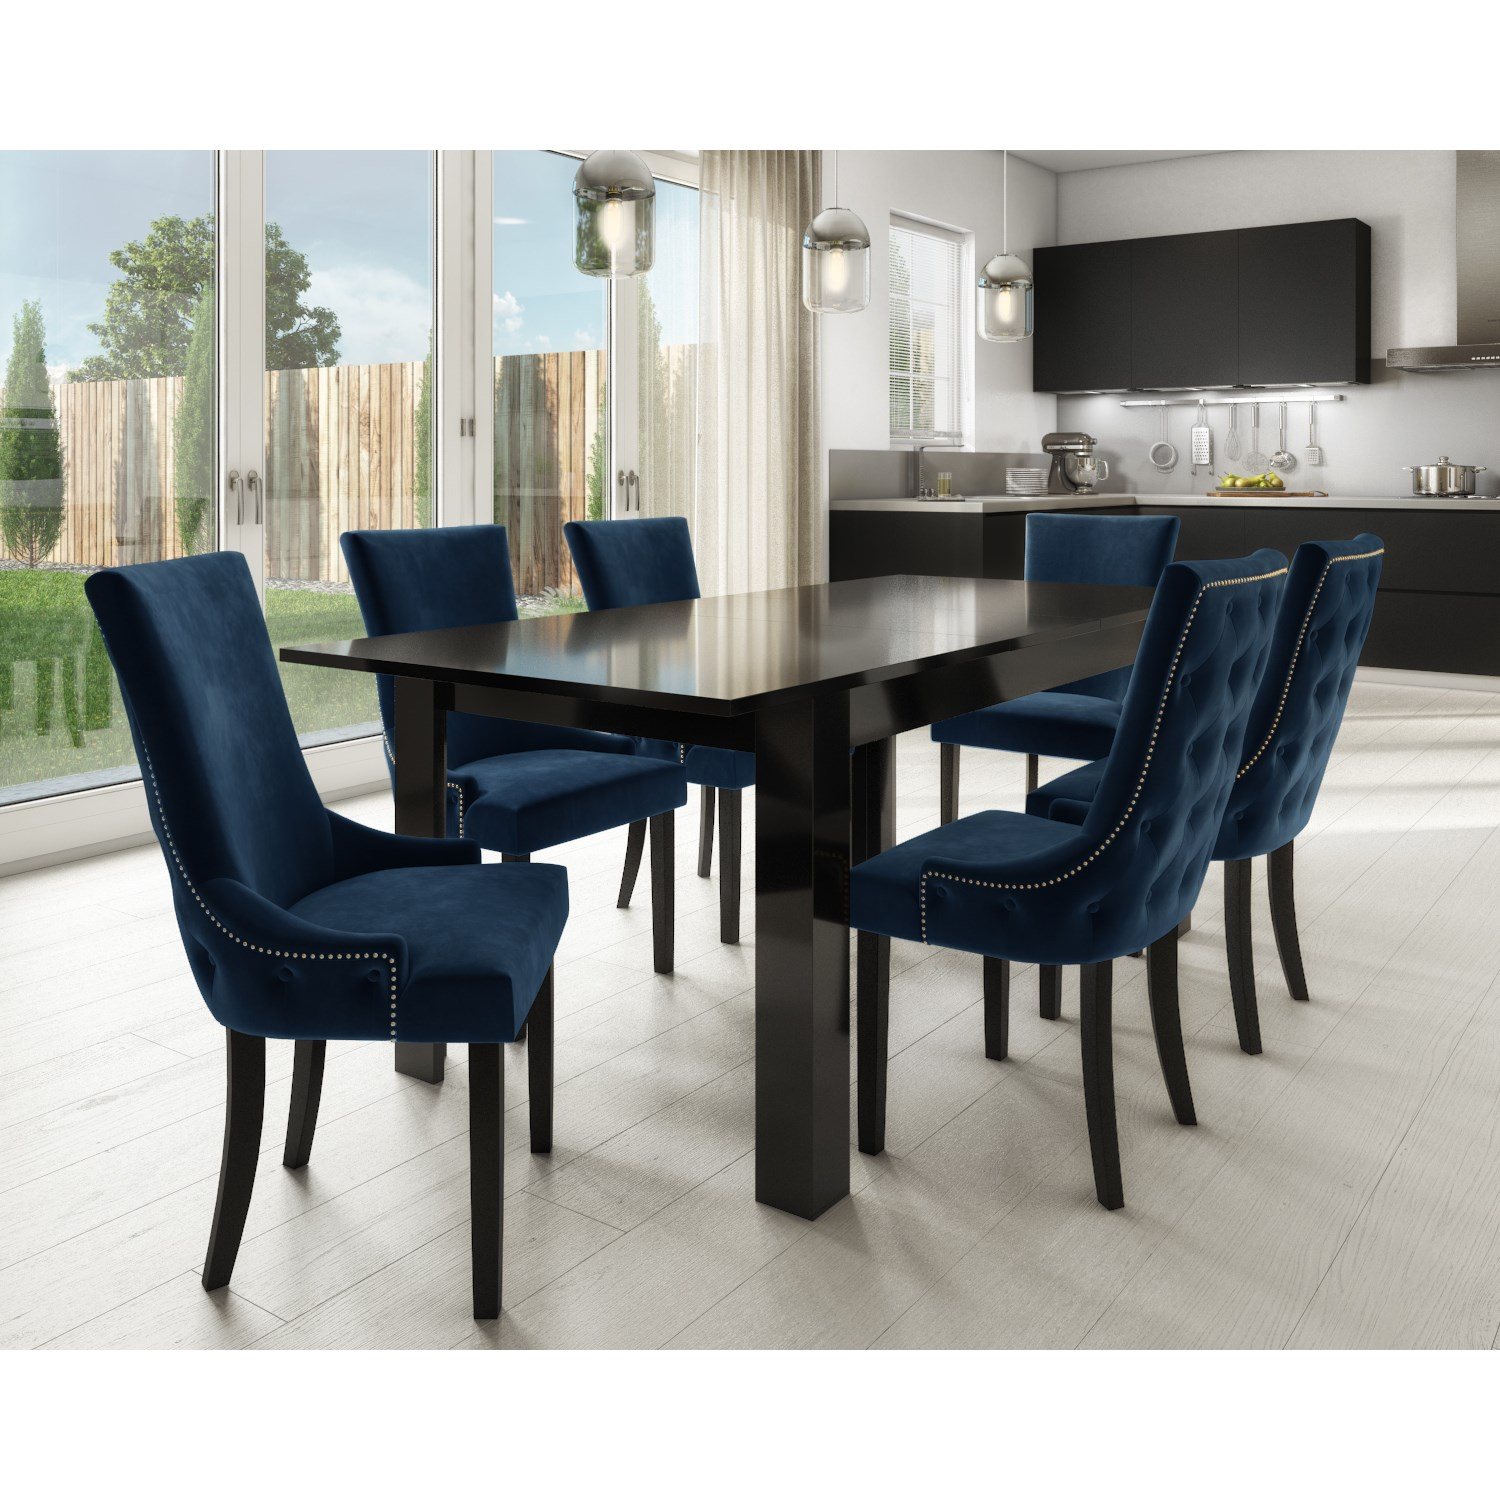 6 Navy Blue Velvet Dining Chairs, Dining Room Chairs Uk Black